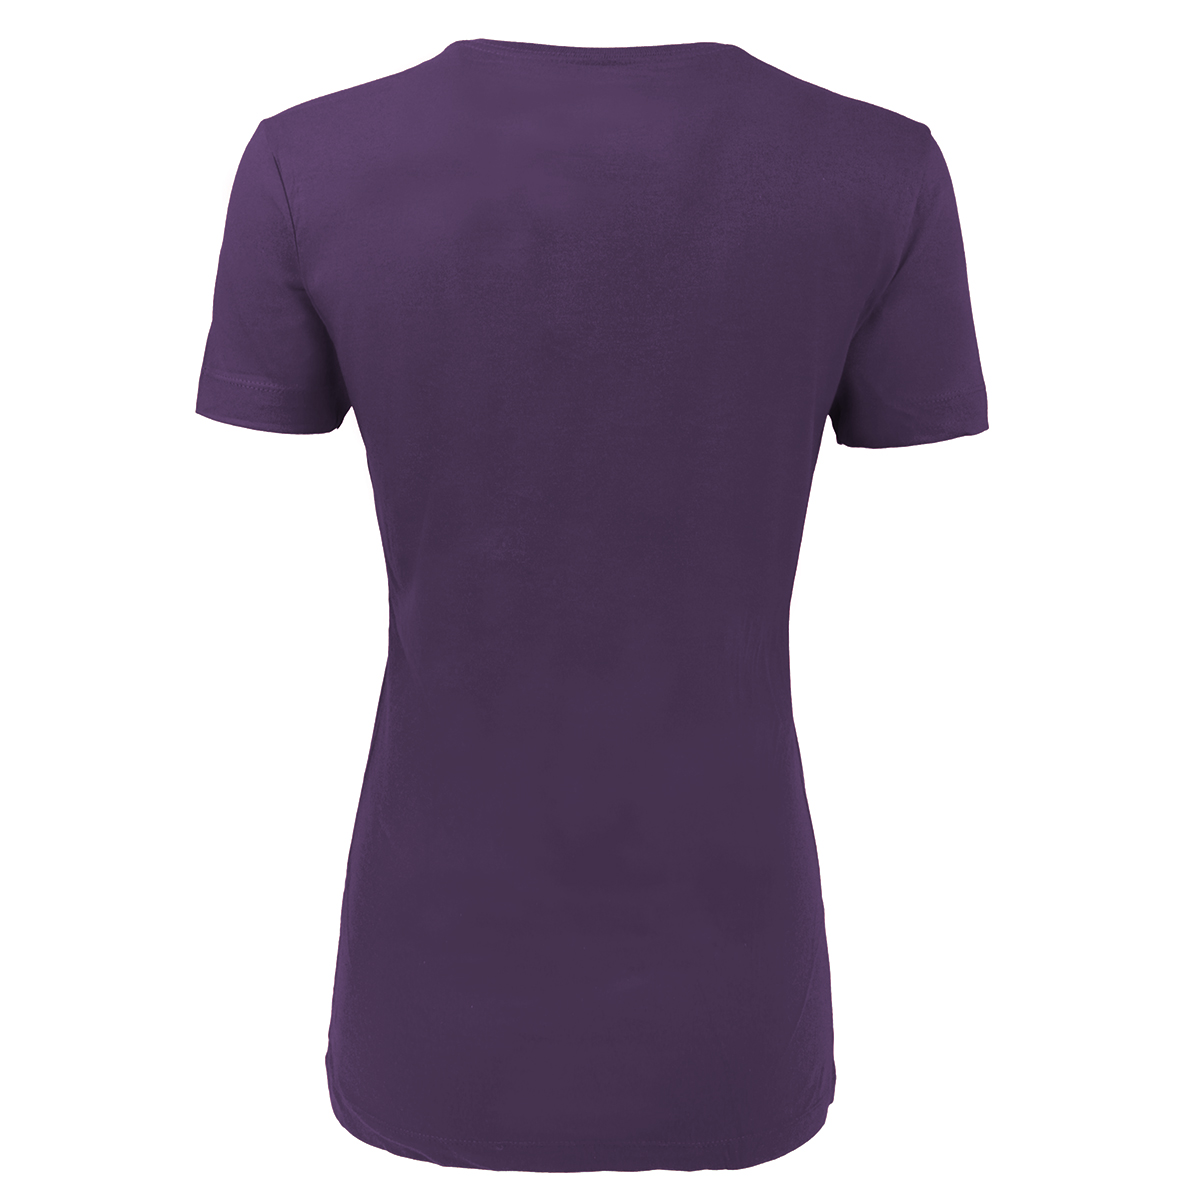 Nike-Women-039-s-Cotton-Loose-Fit-T-Shirt thumbnail 9